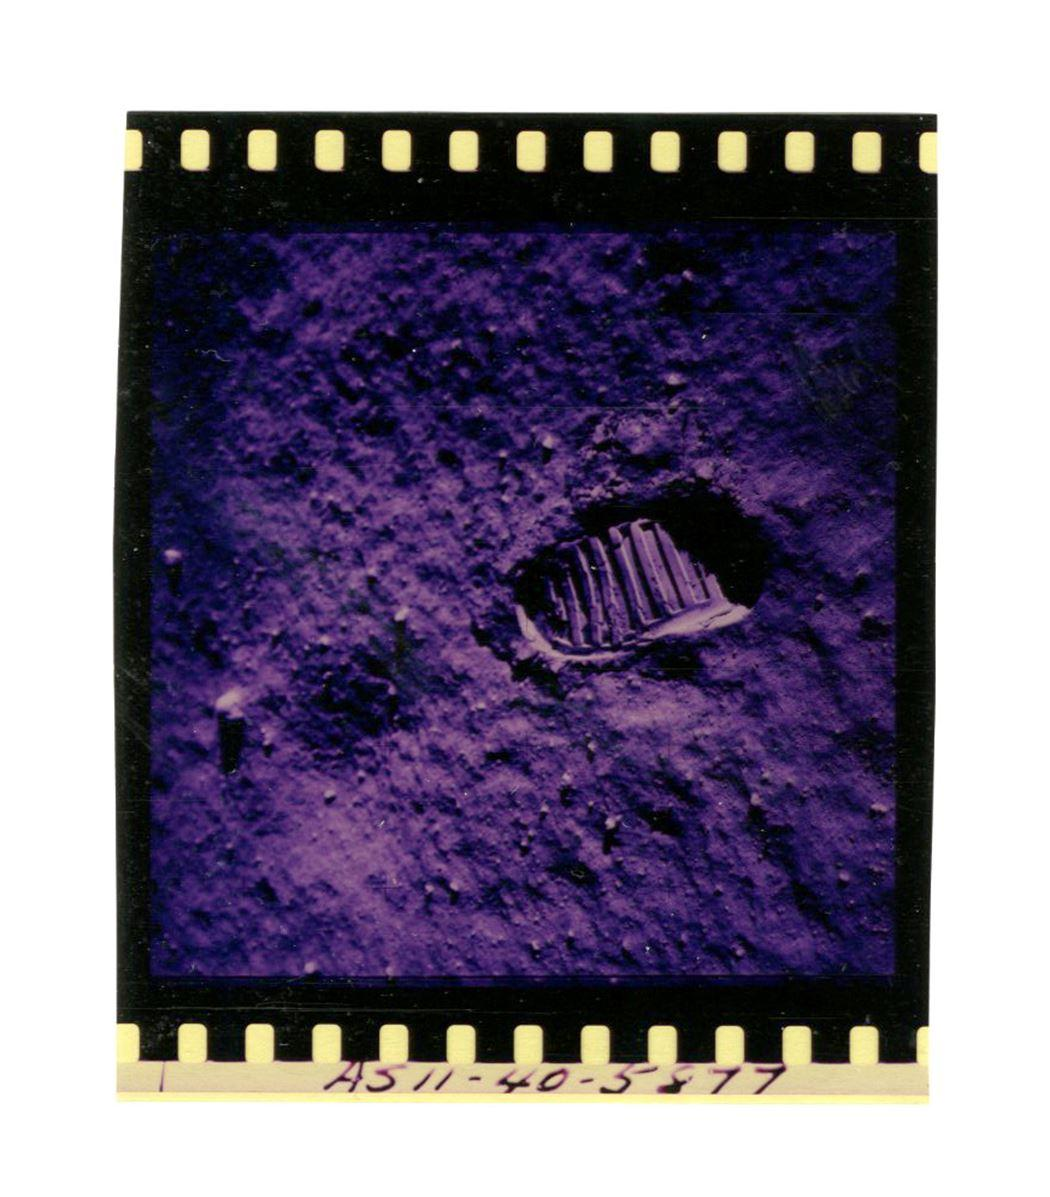 Iconic Apollo XI Color Film Negative of Aldrin's Footprint on the Moon